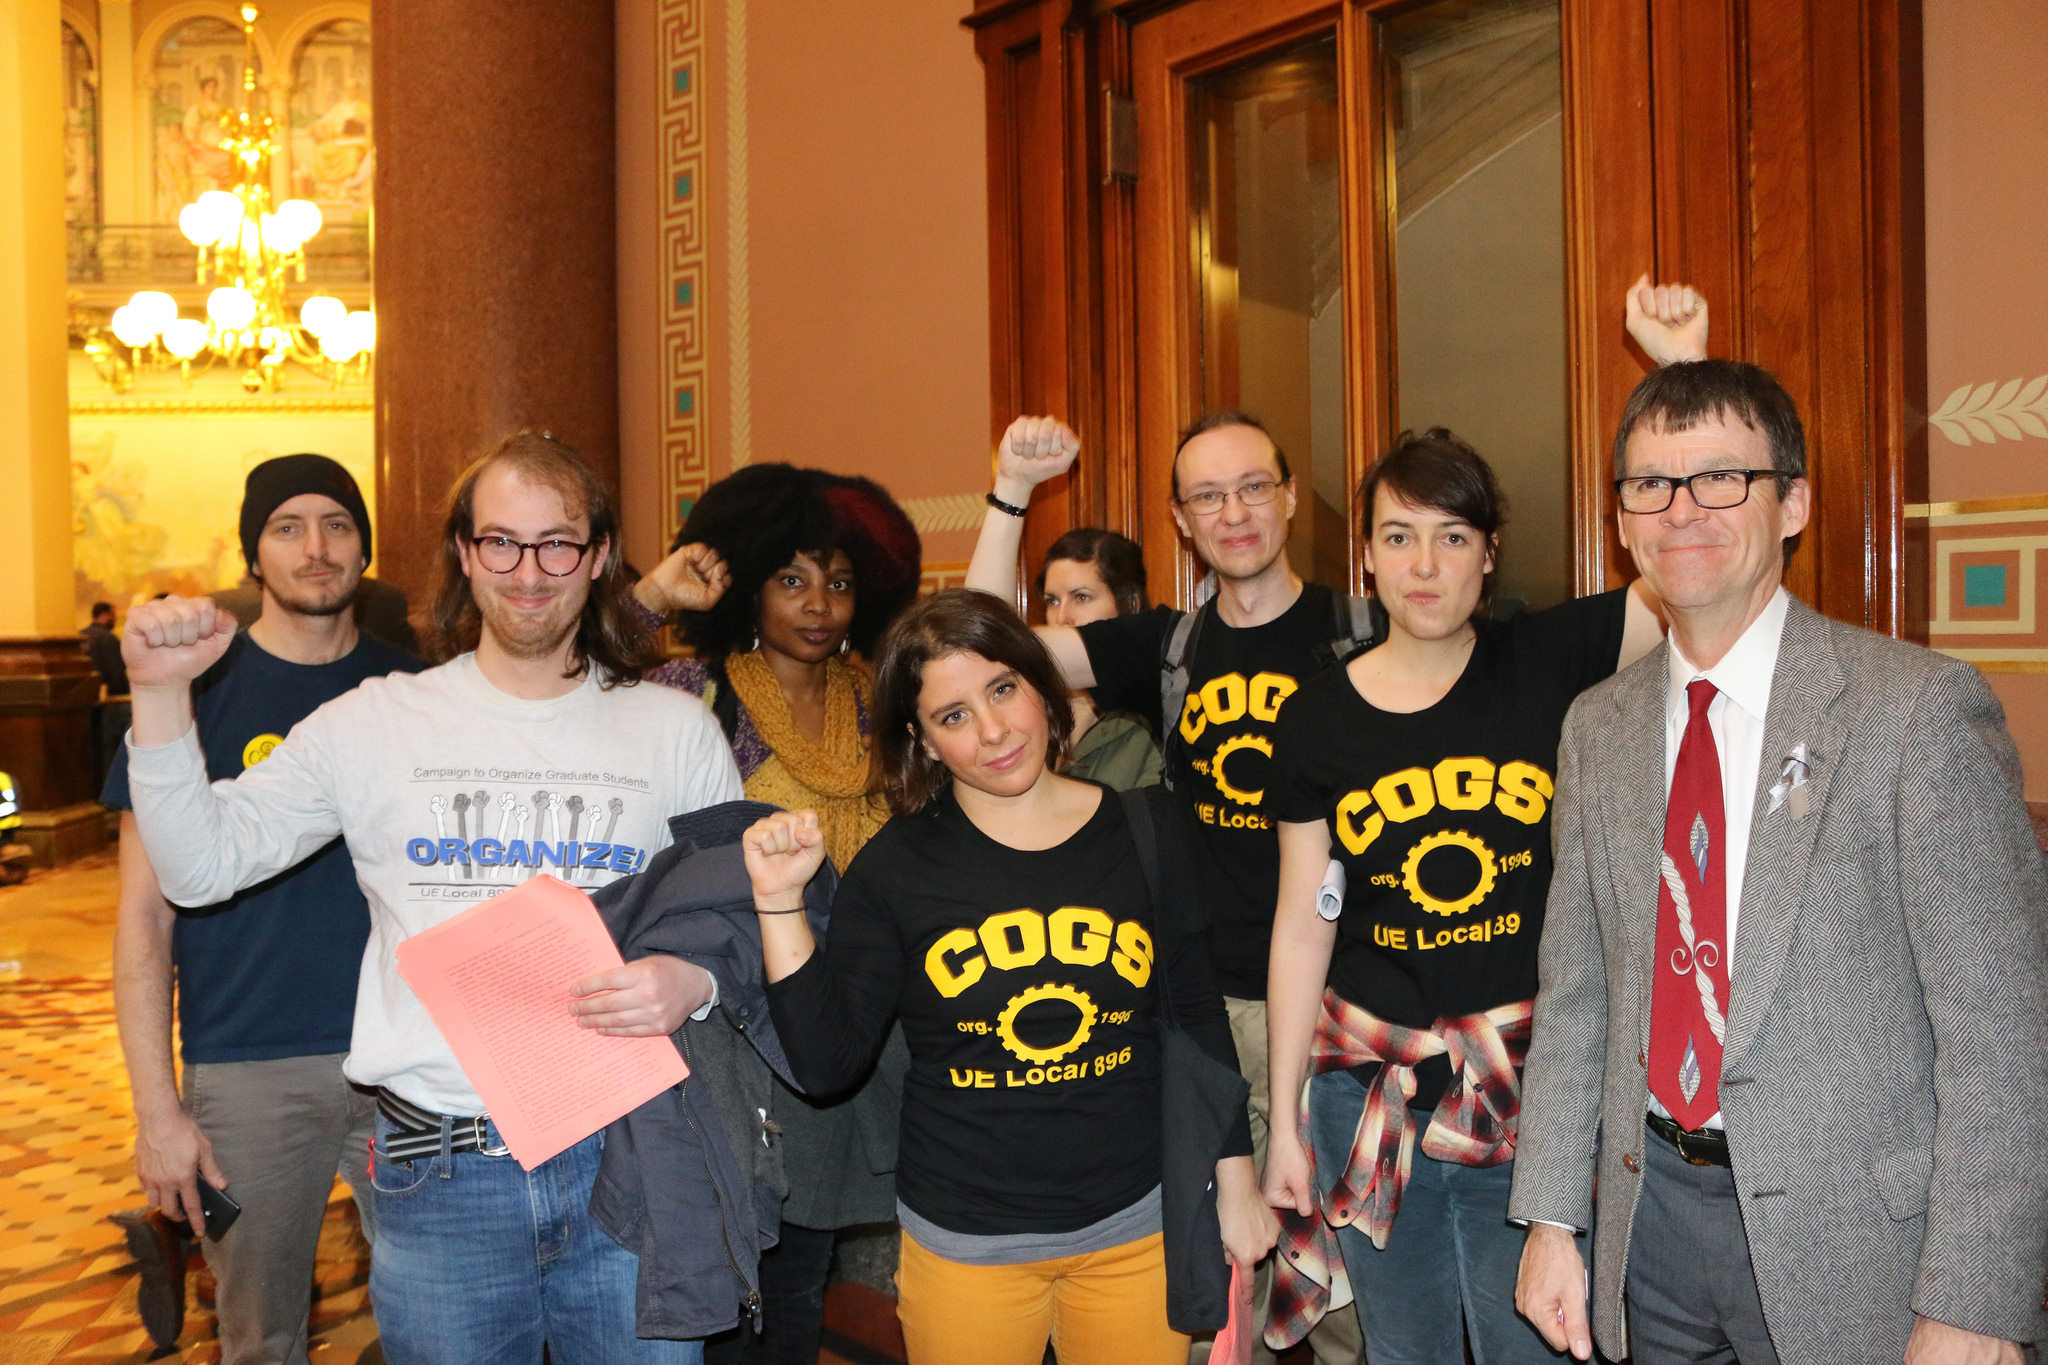 UE Local 896-COGS members in the Iowa state capitol building, with raised fists